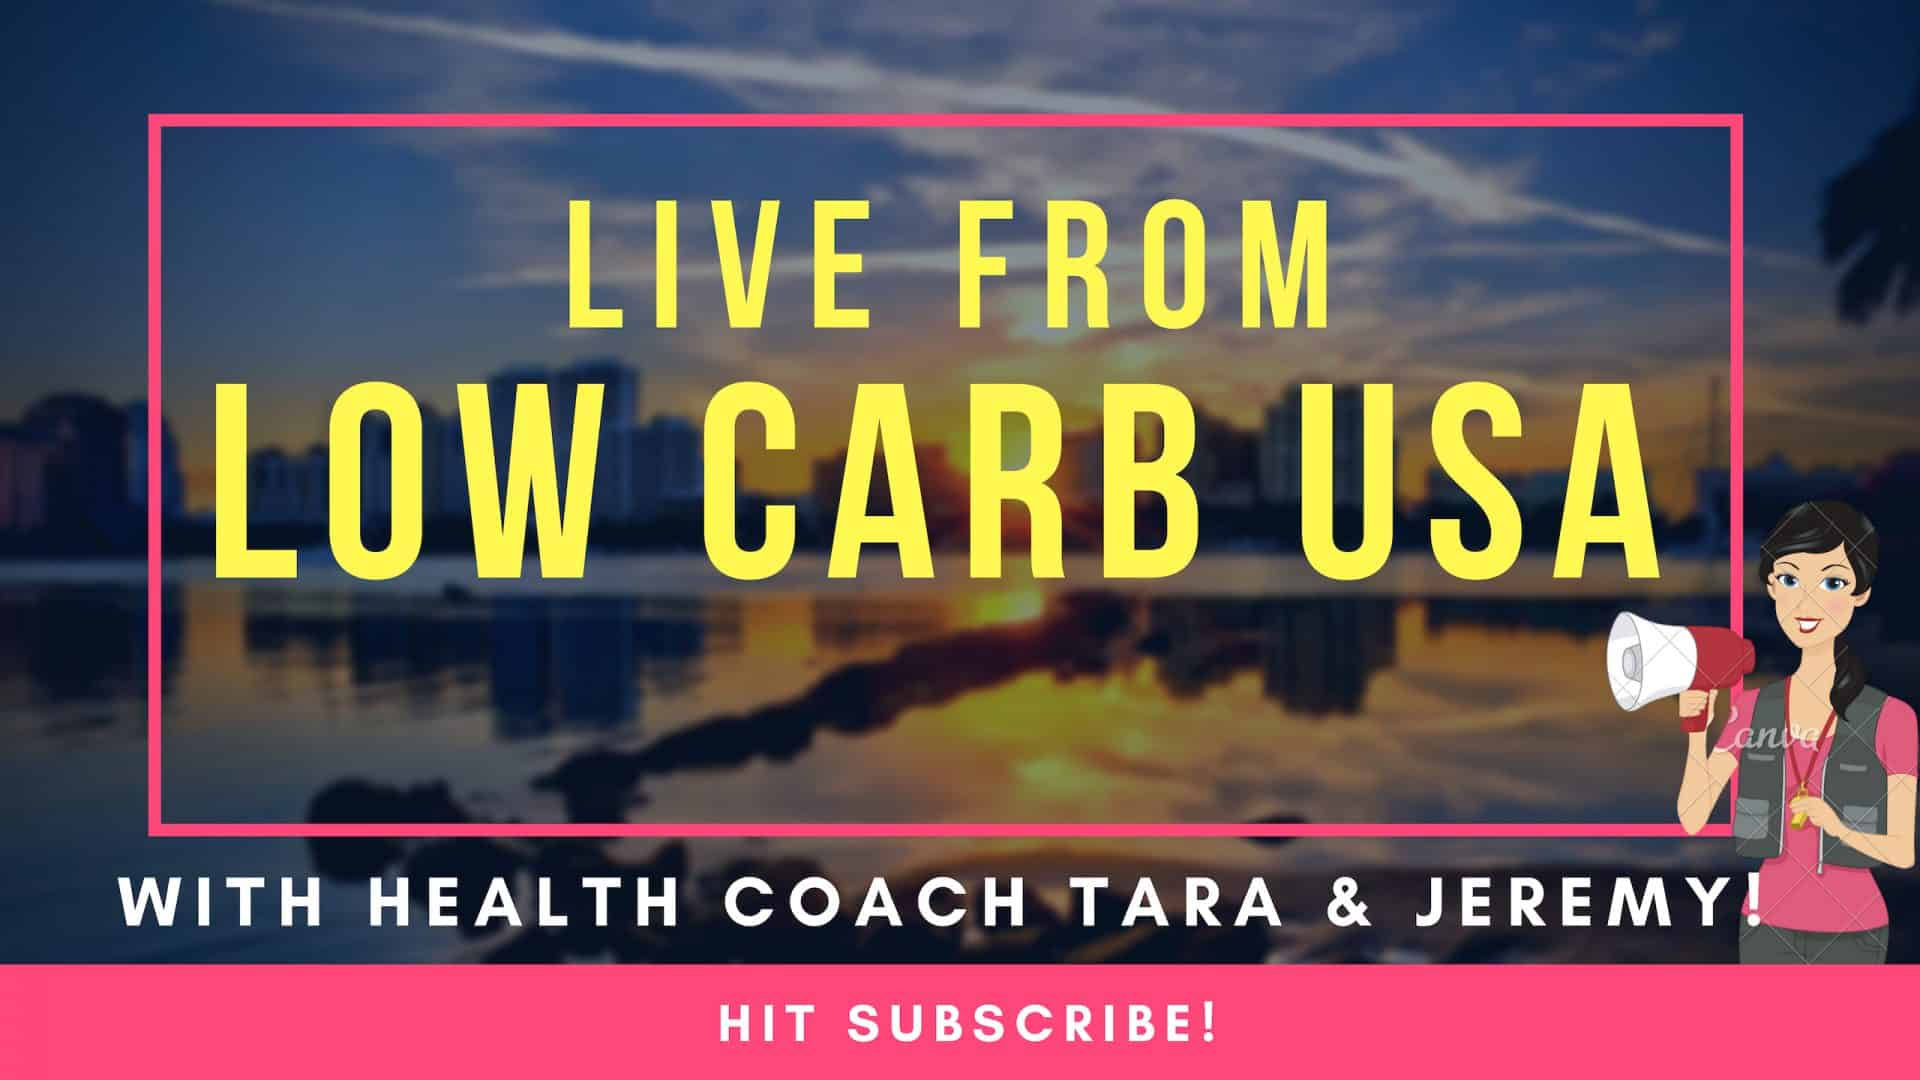 LIVE Video Viralocity LIVE From Low Carb USA